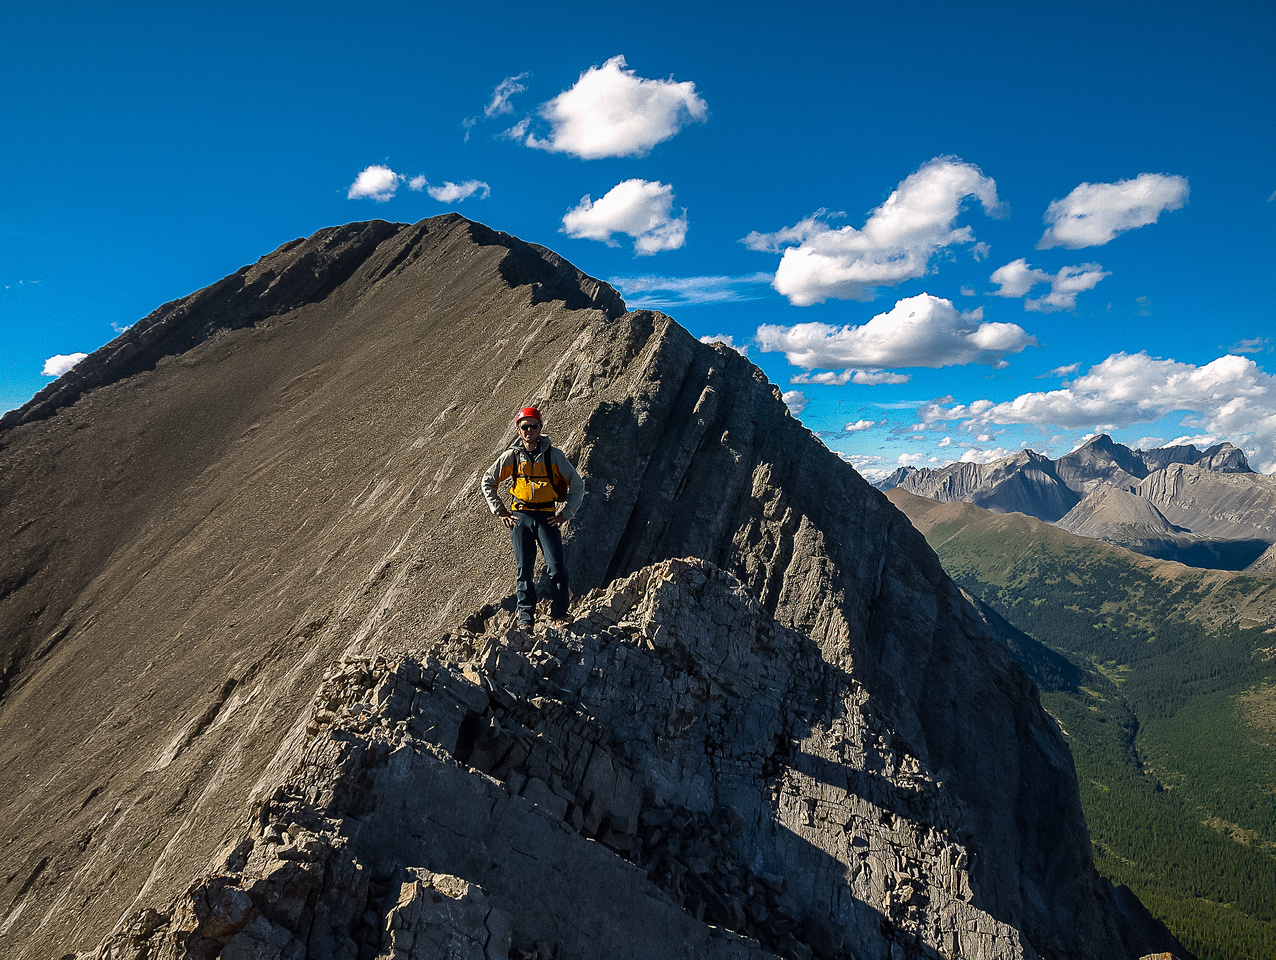 Raf on top of the east face of Storelk with the summit in the bg.